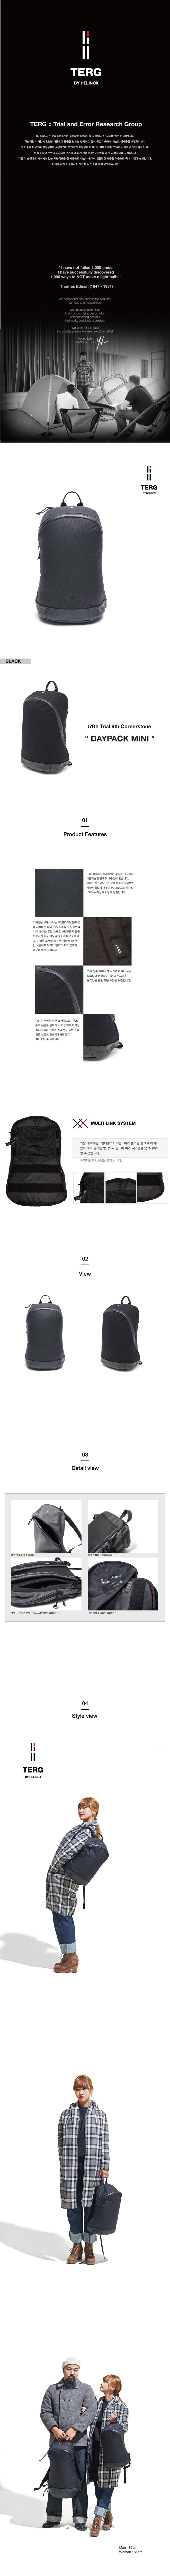 20160425-Daypack-Mini---Black.jpg